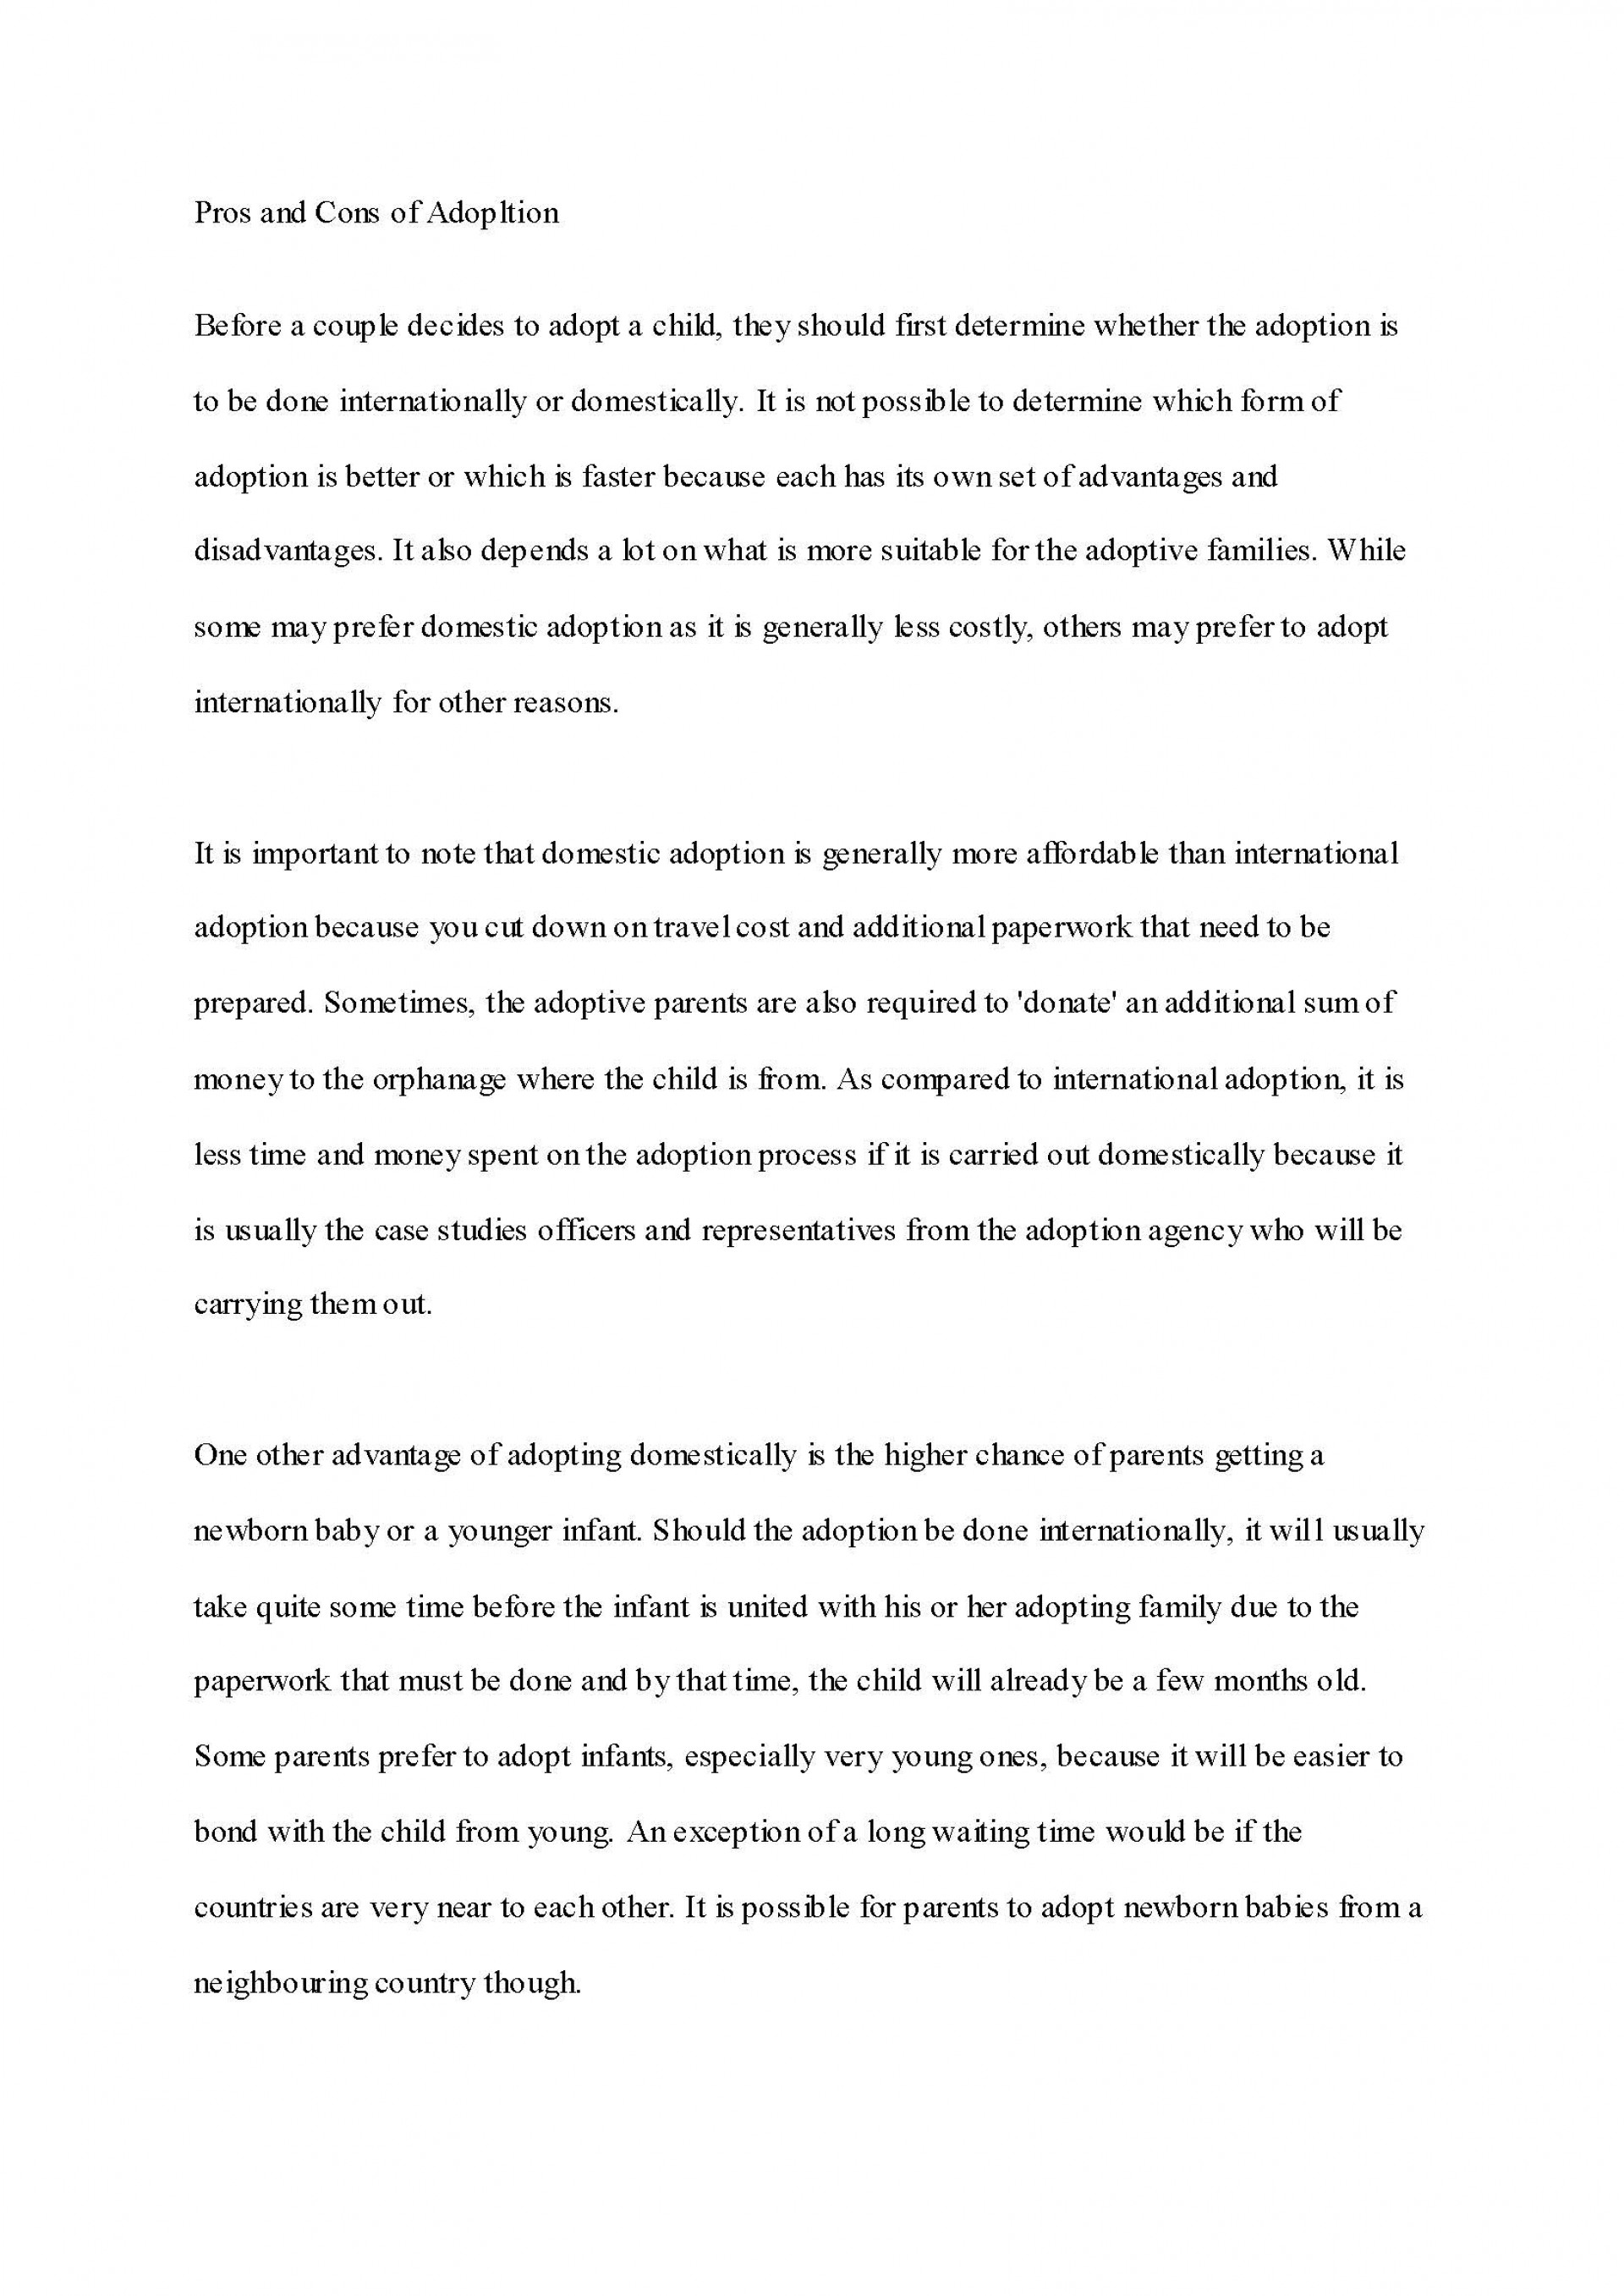 008 Adoption Essay Sample Do My Surprising Write Generator Free Uk Reviews Now 1920